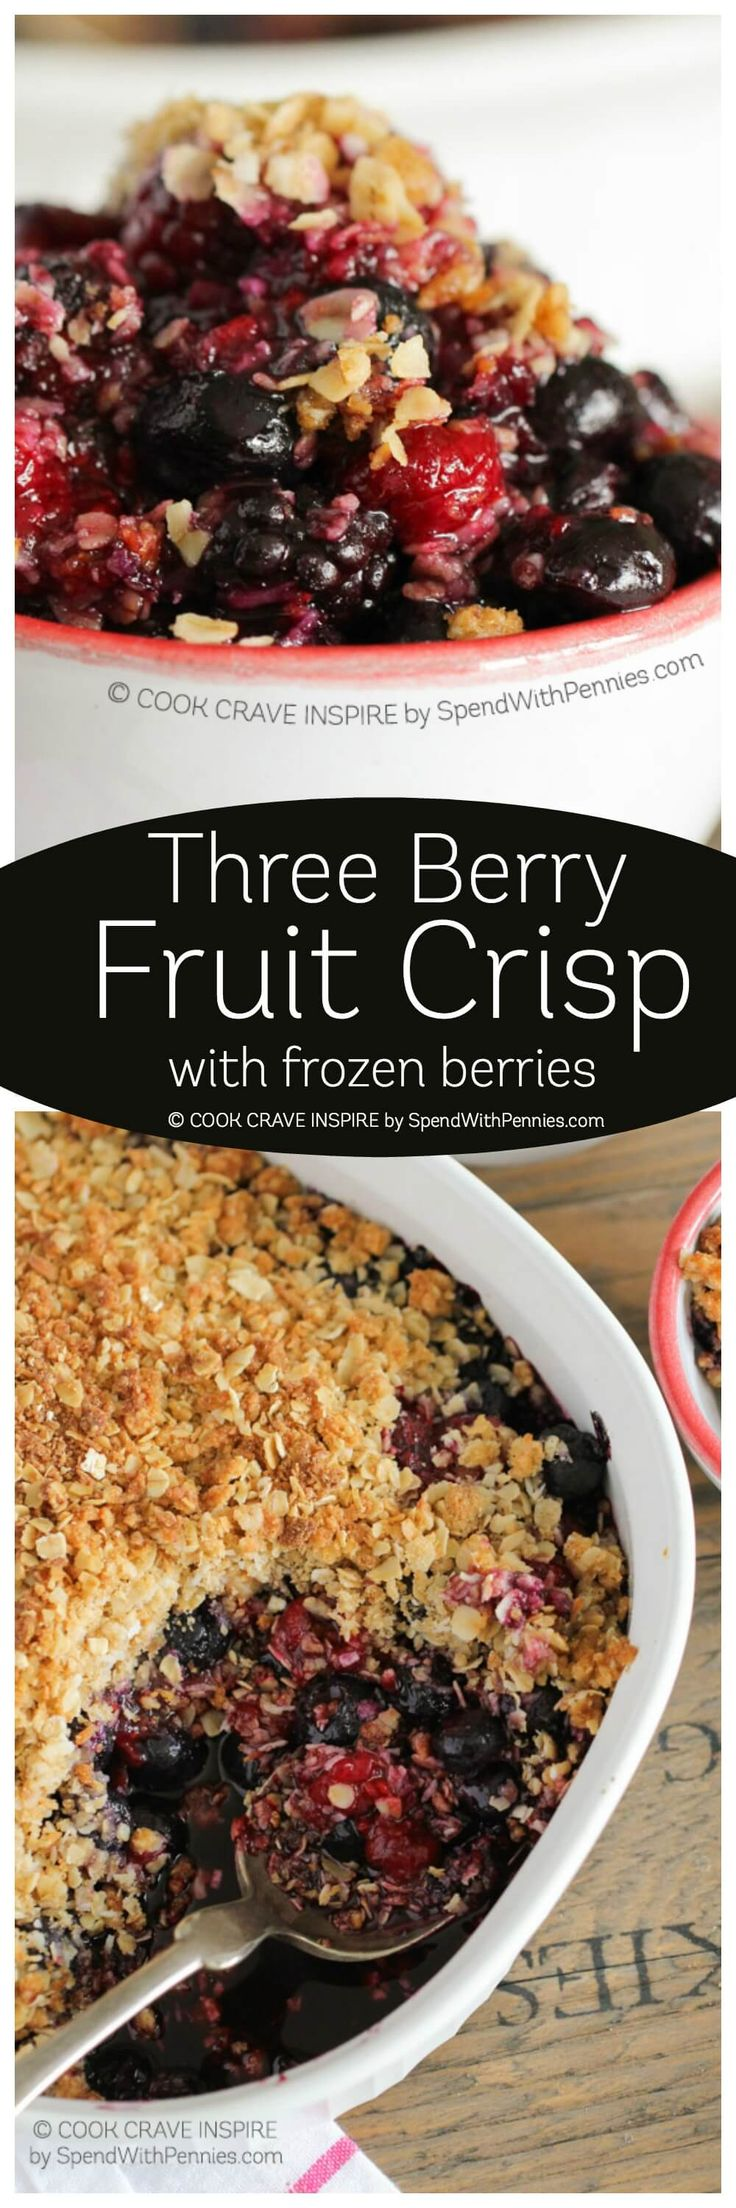 Mixed Berry Crisp is deliciously easy! With an extra dose of crumble topping and a hint of lemon zest, this is one of my most requested dessert recipes!